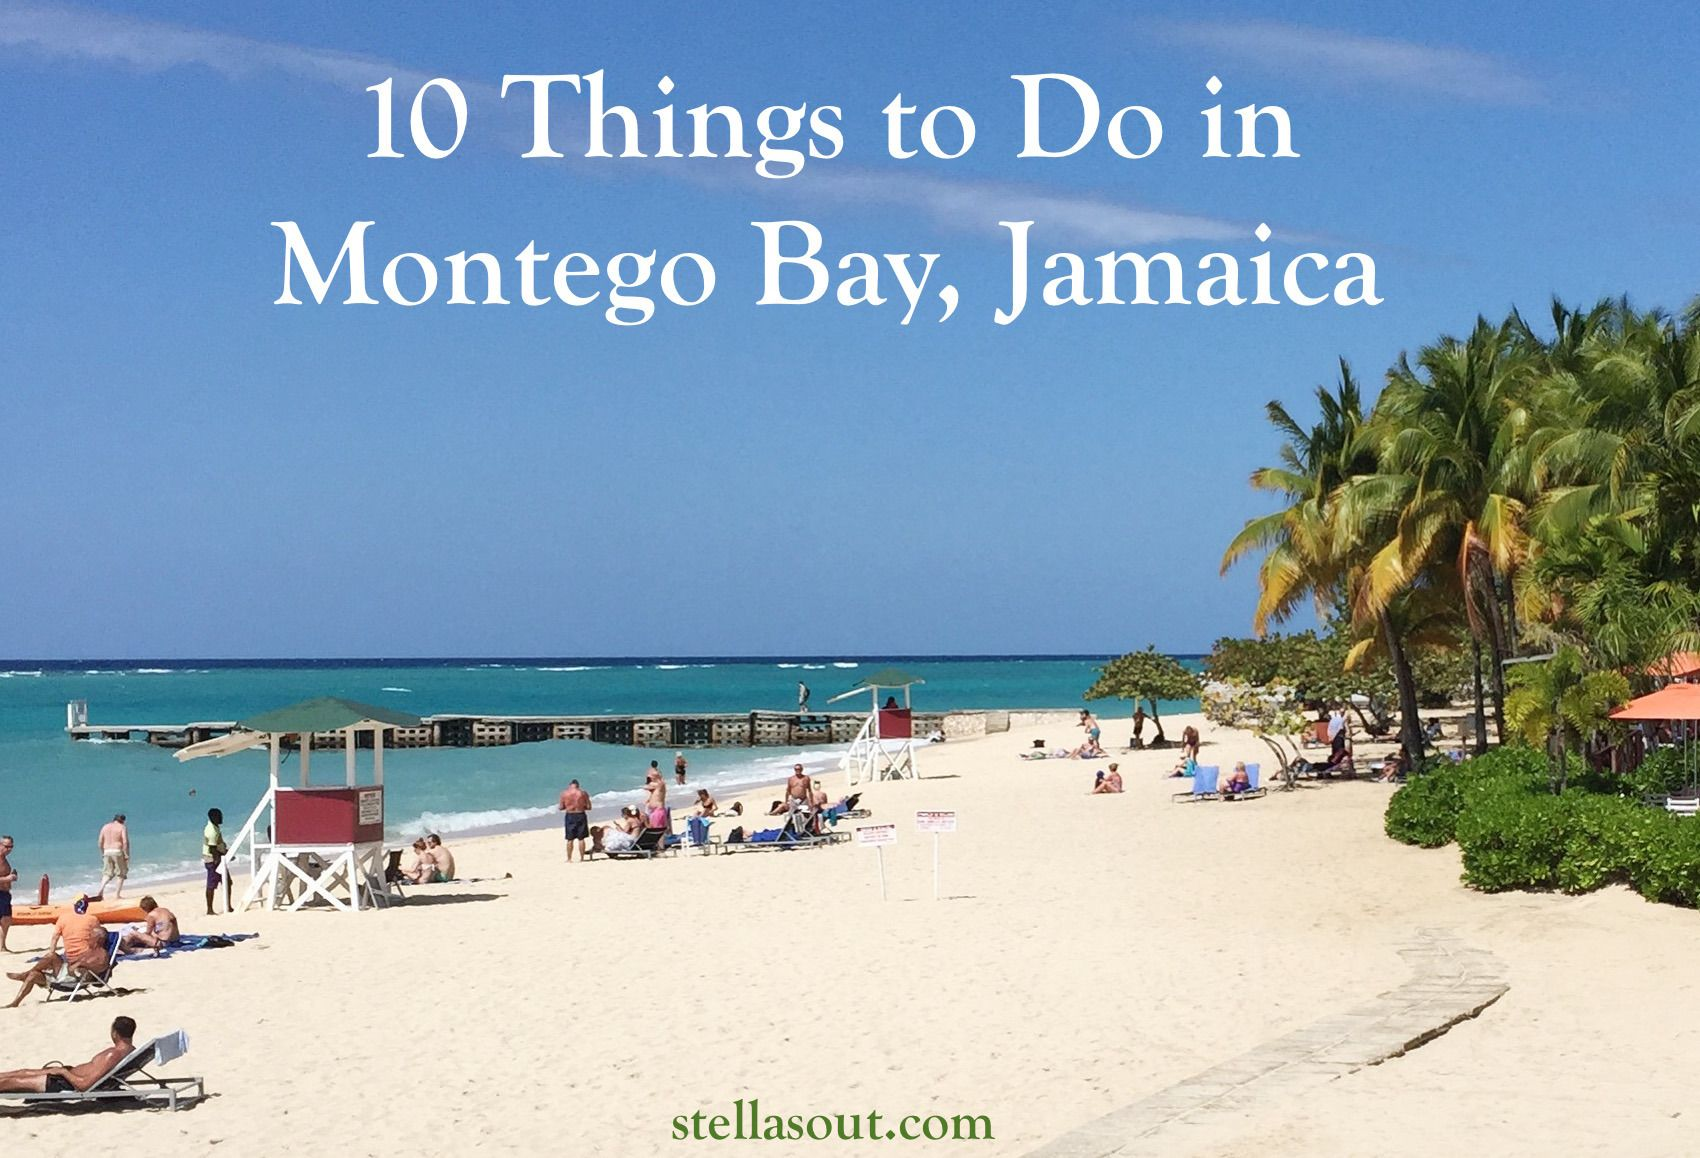 i really need to get to jamaica